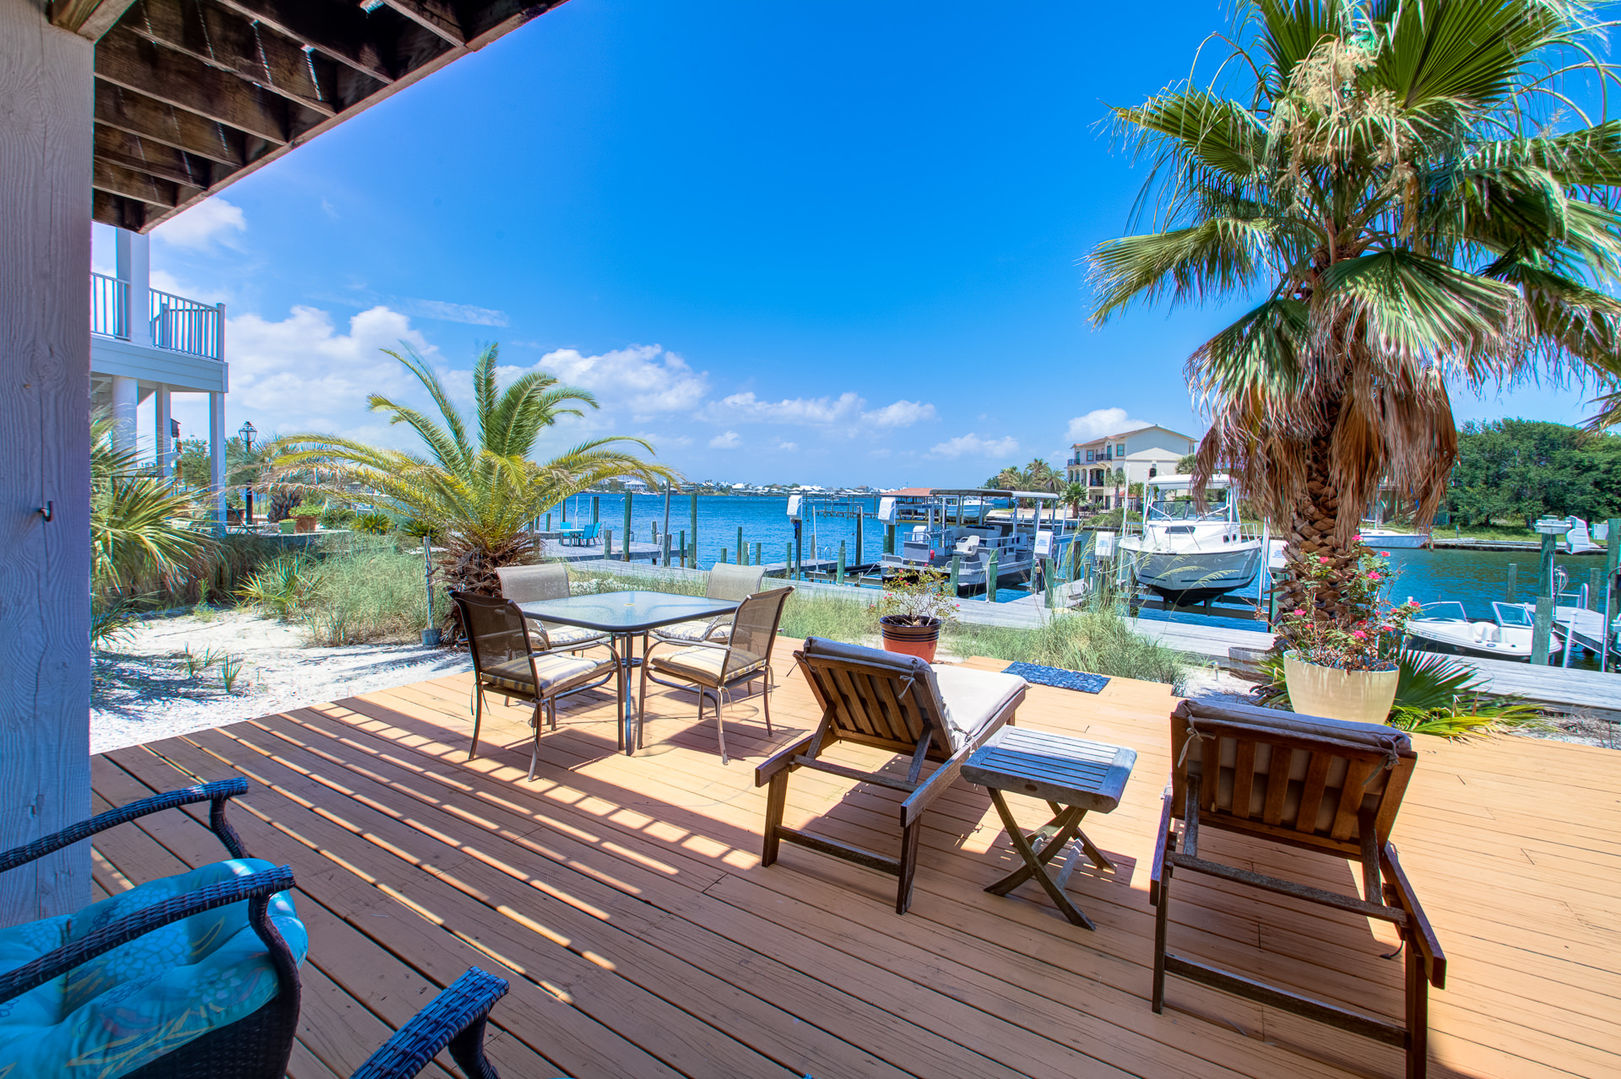 Relax Outside at the Vacation Rental in Pensacola Florida.